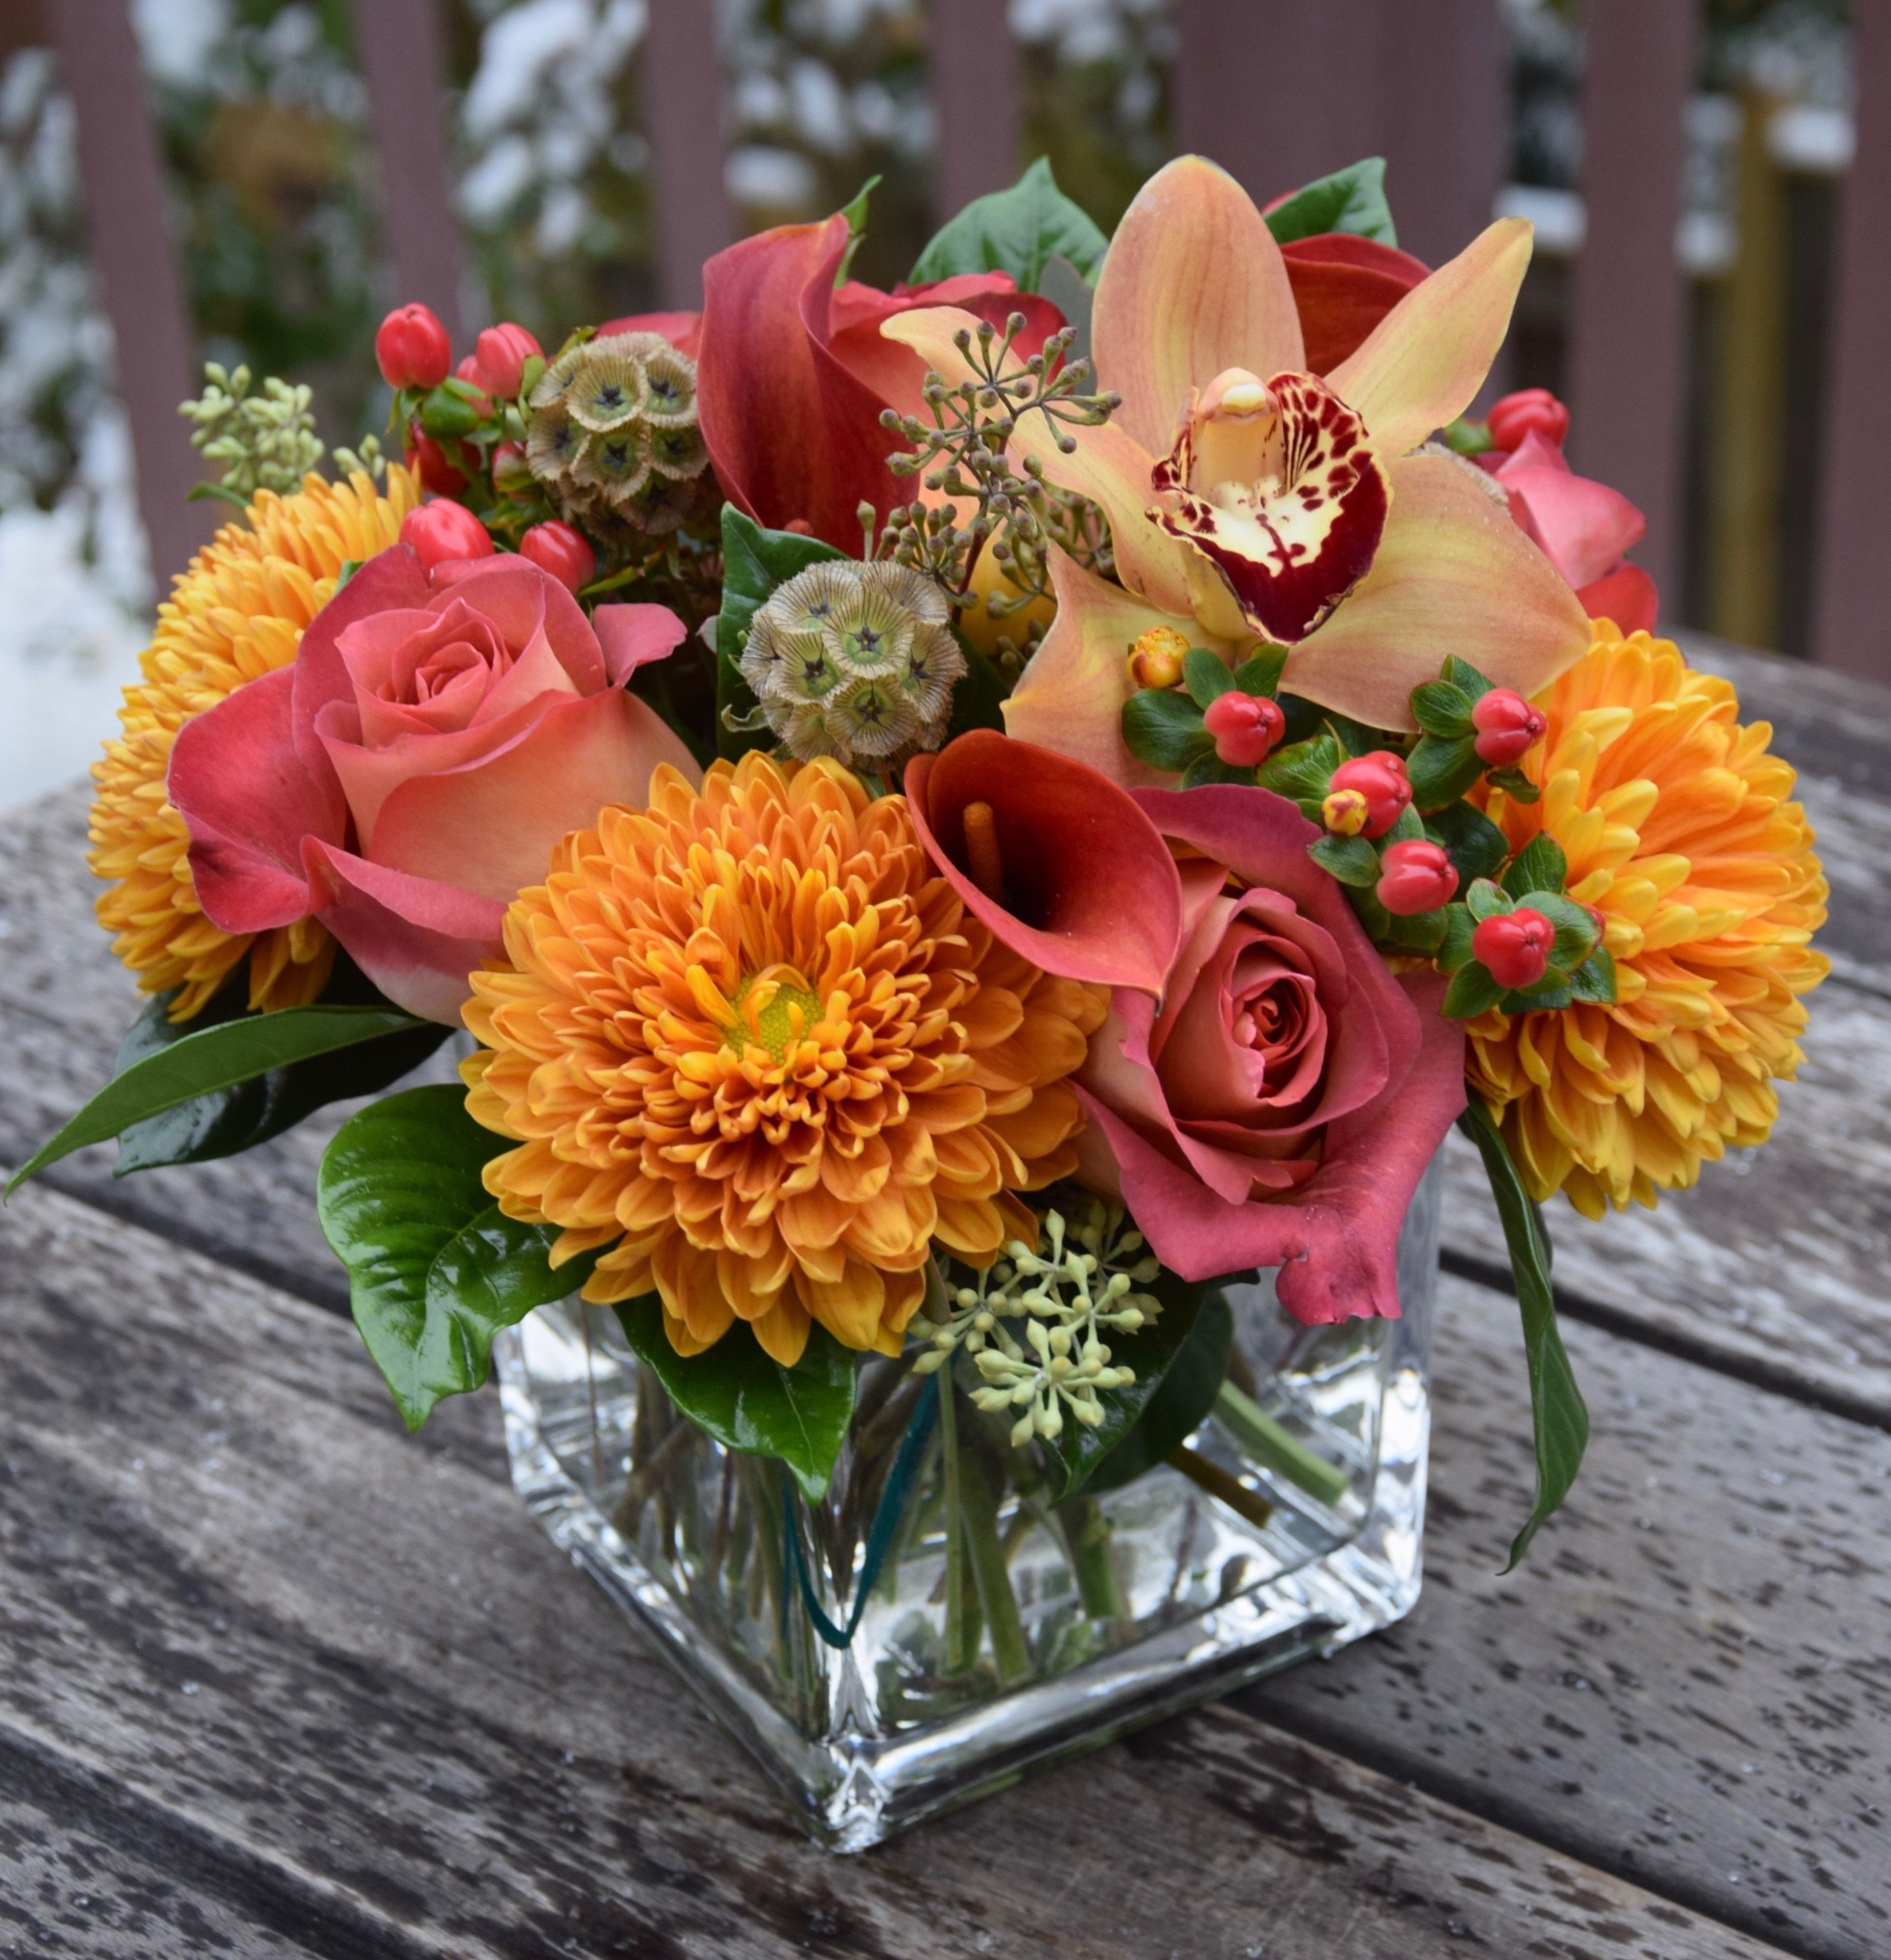 Flower Arrangement With Bright Bold Colored Flowers Coffee Break Roses Disbud Fresh Flowers Arrangements Modern Flower Arrangements Fall Flower Arrangements